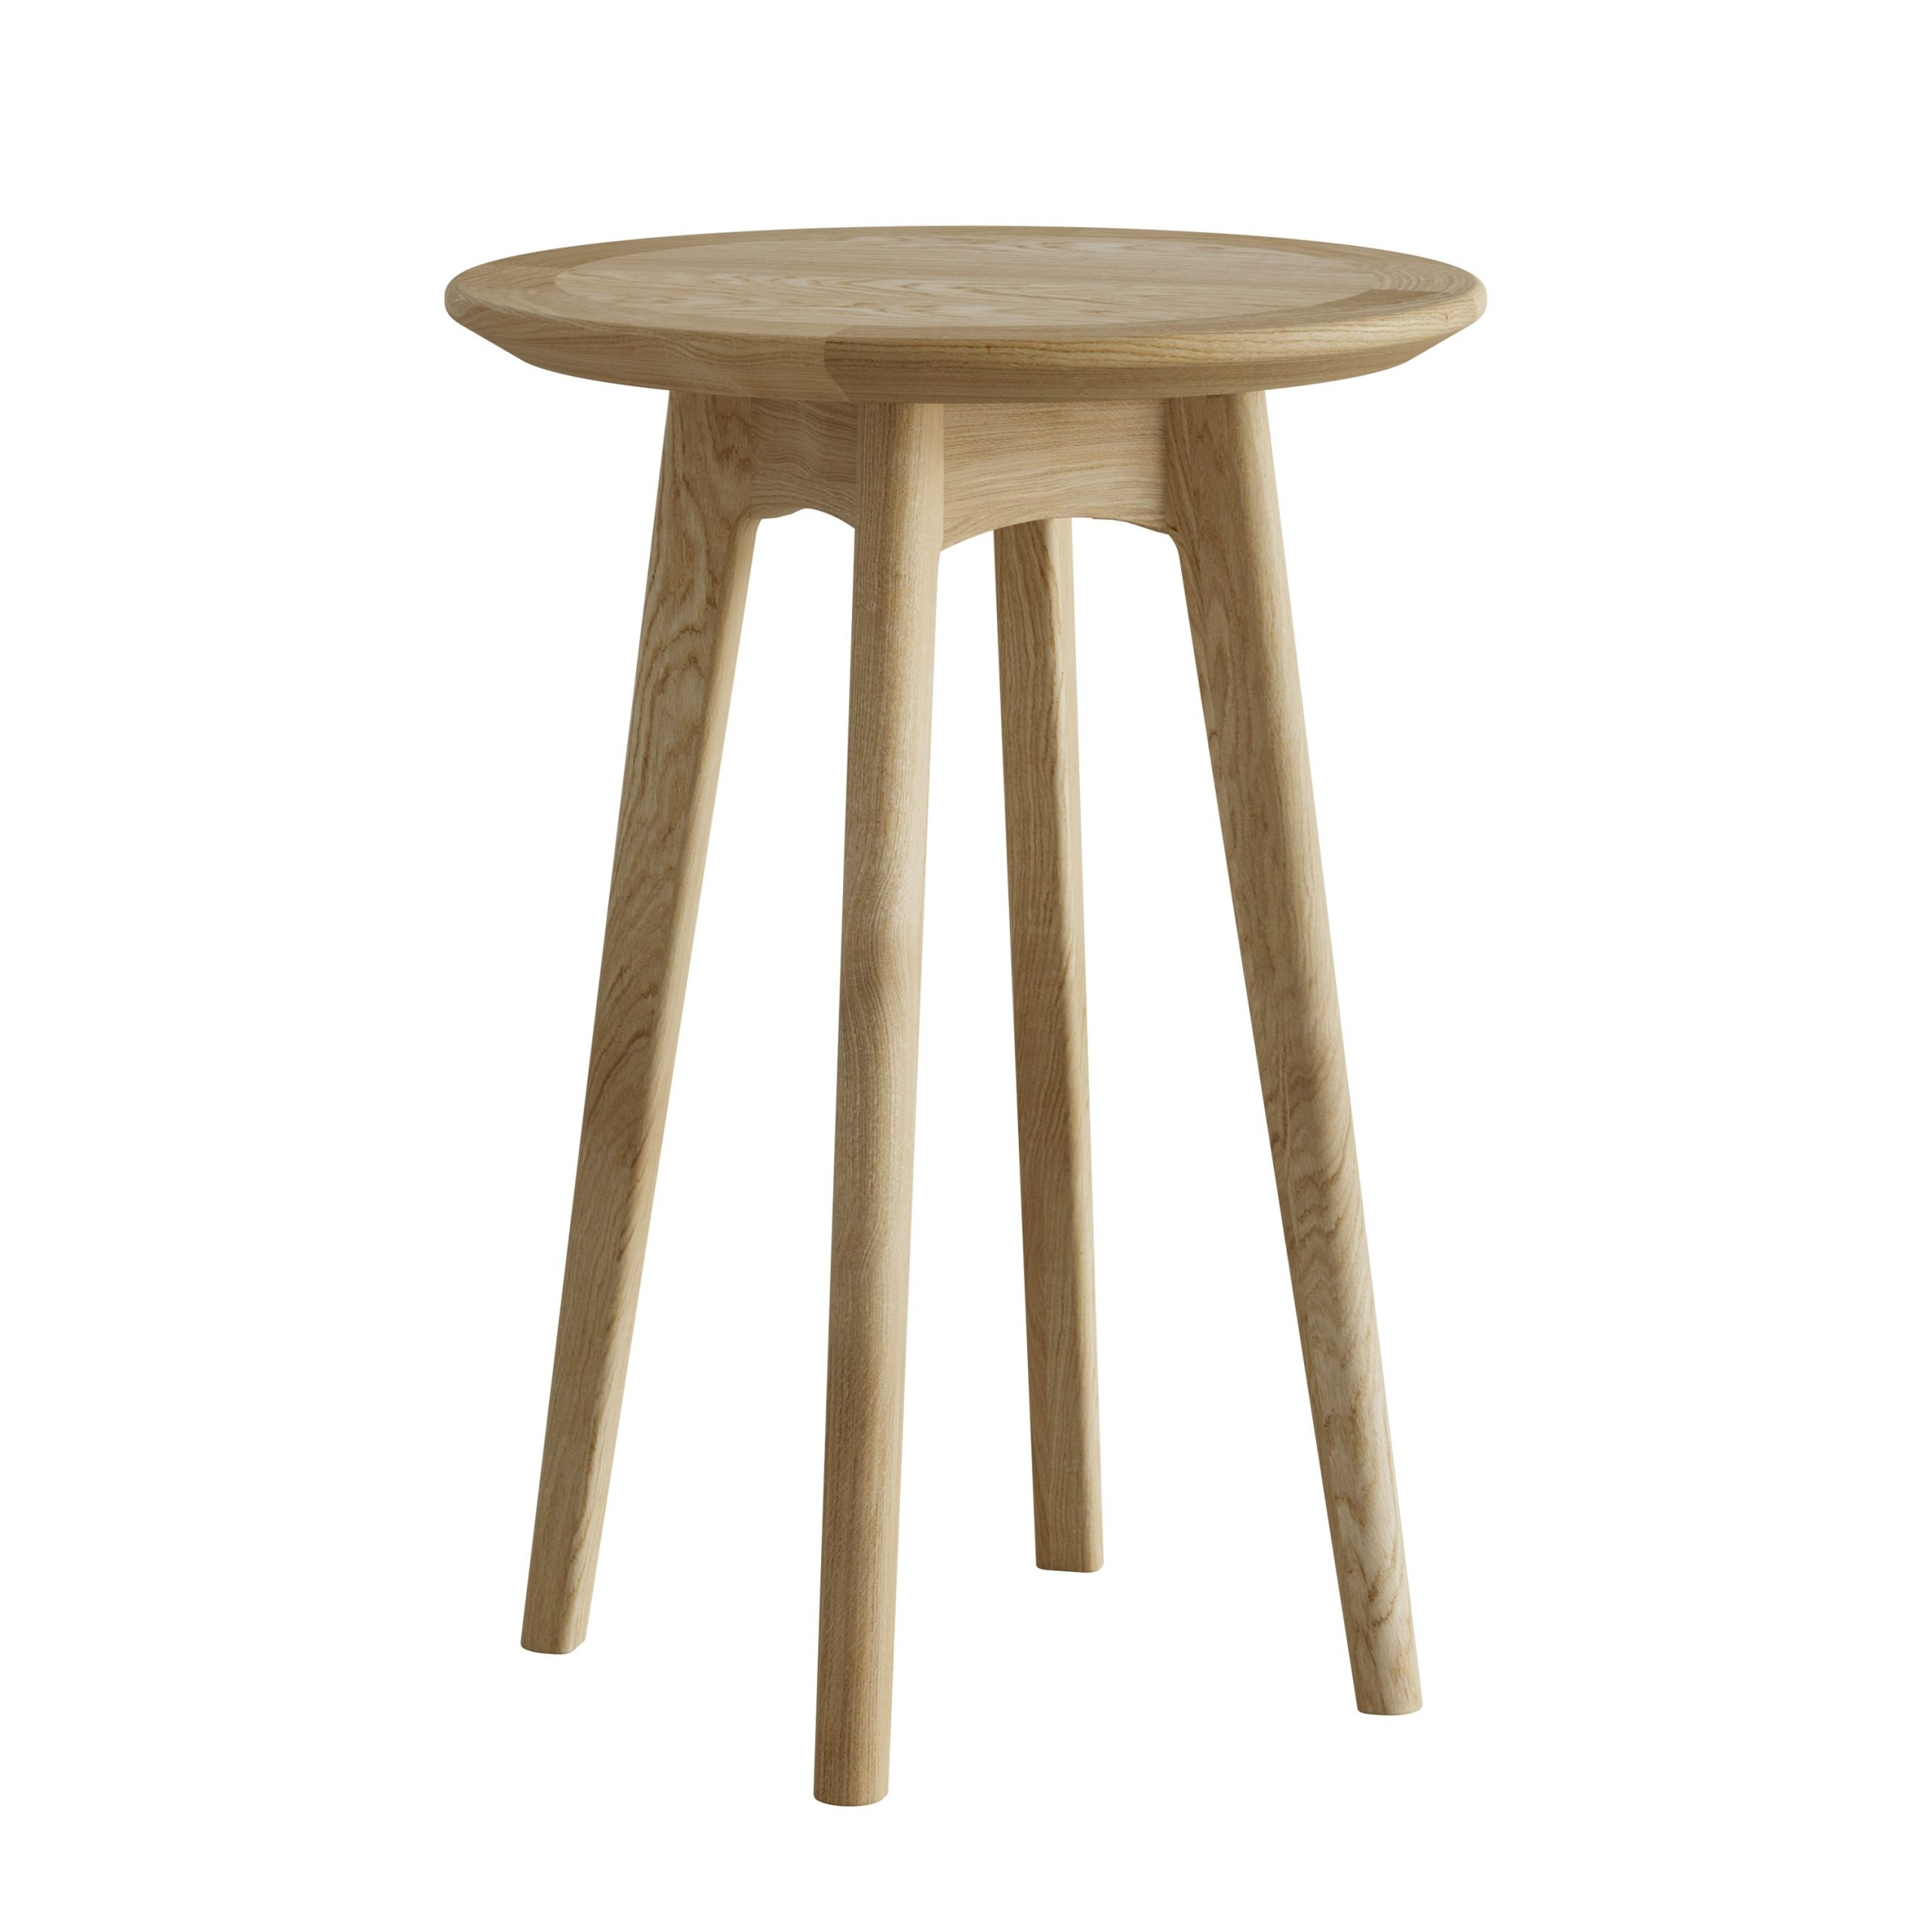 Oak Small Round Wine Table - Our Price - Only £125